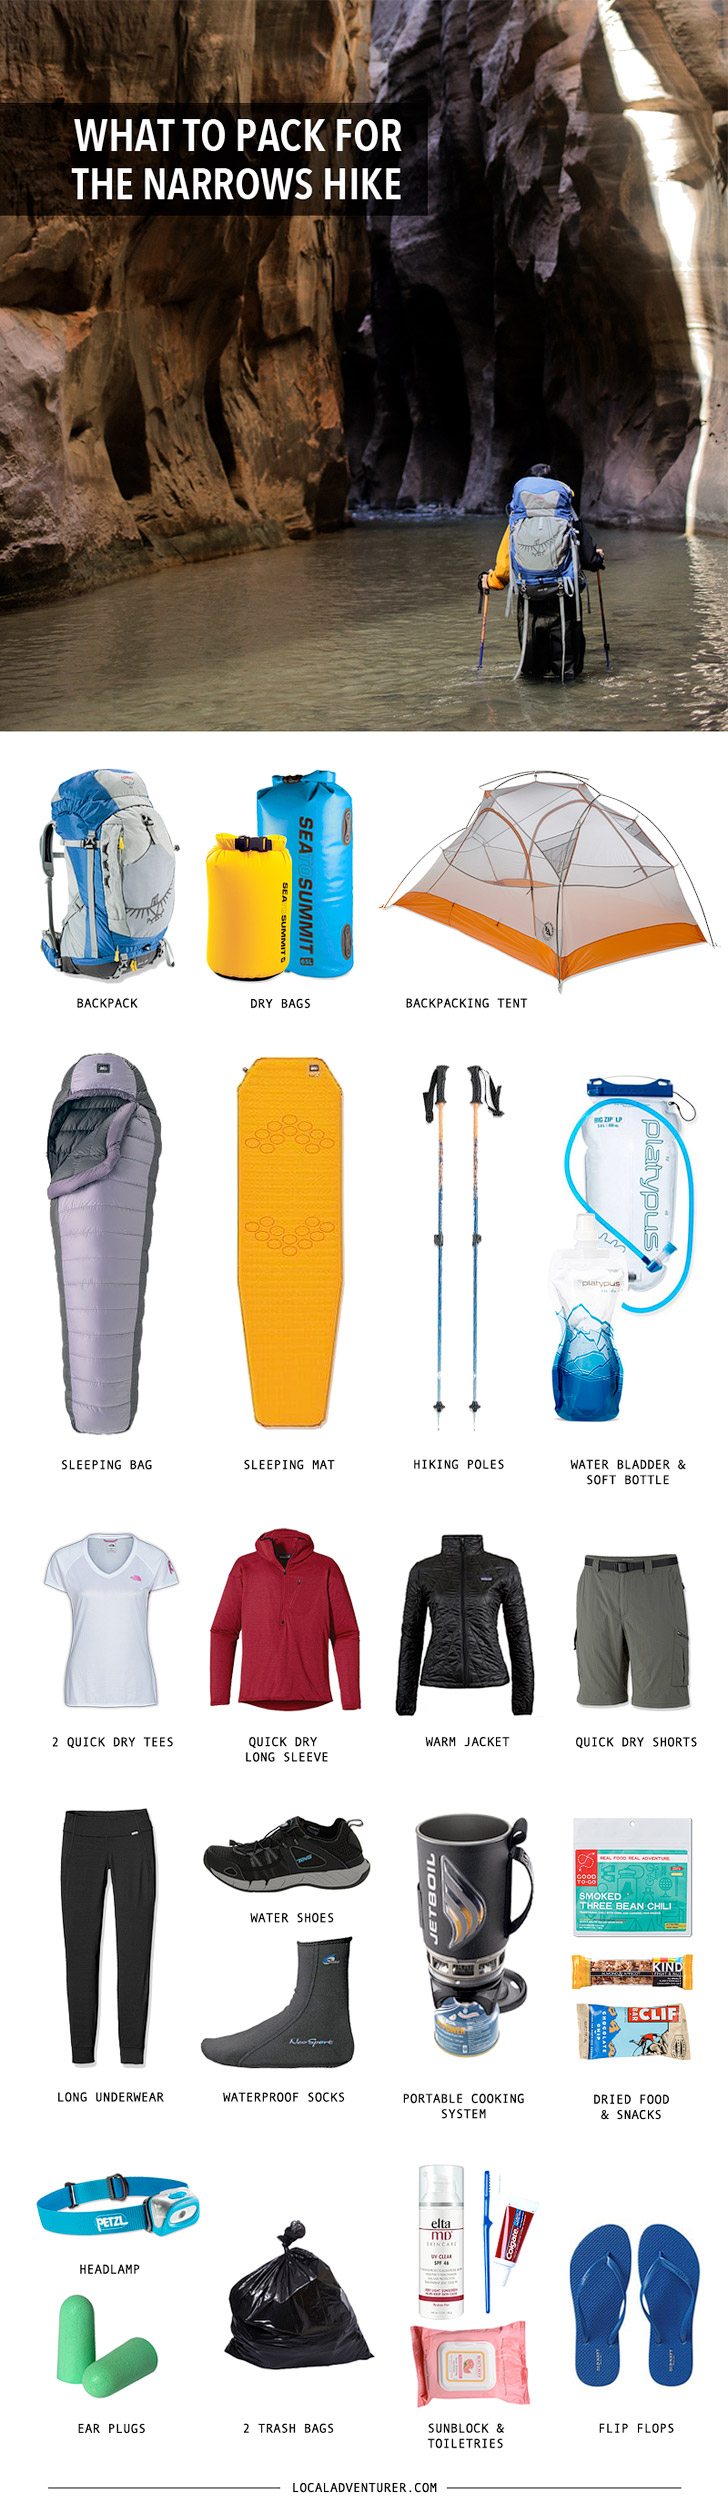 ecec8a17204a Backpacking Gear List for the Zion Narrows Hike Top Down.